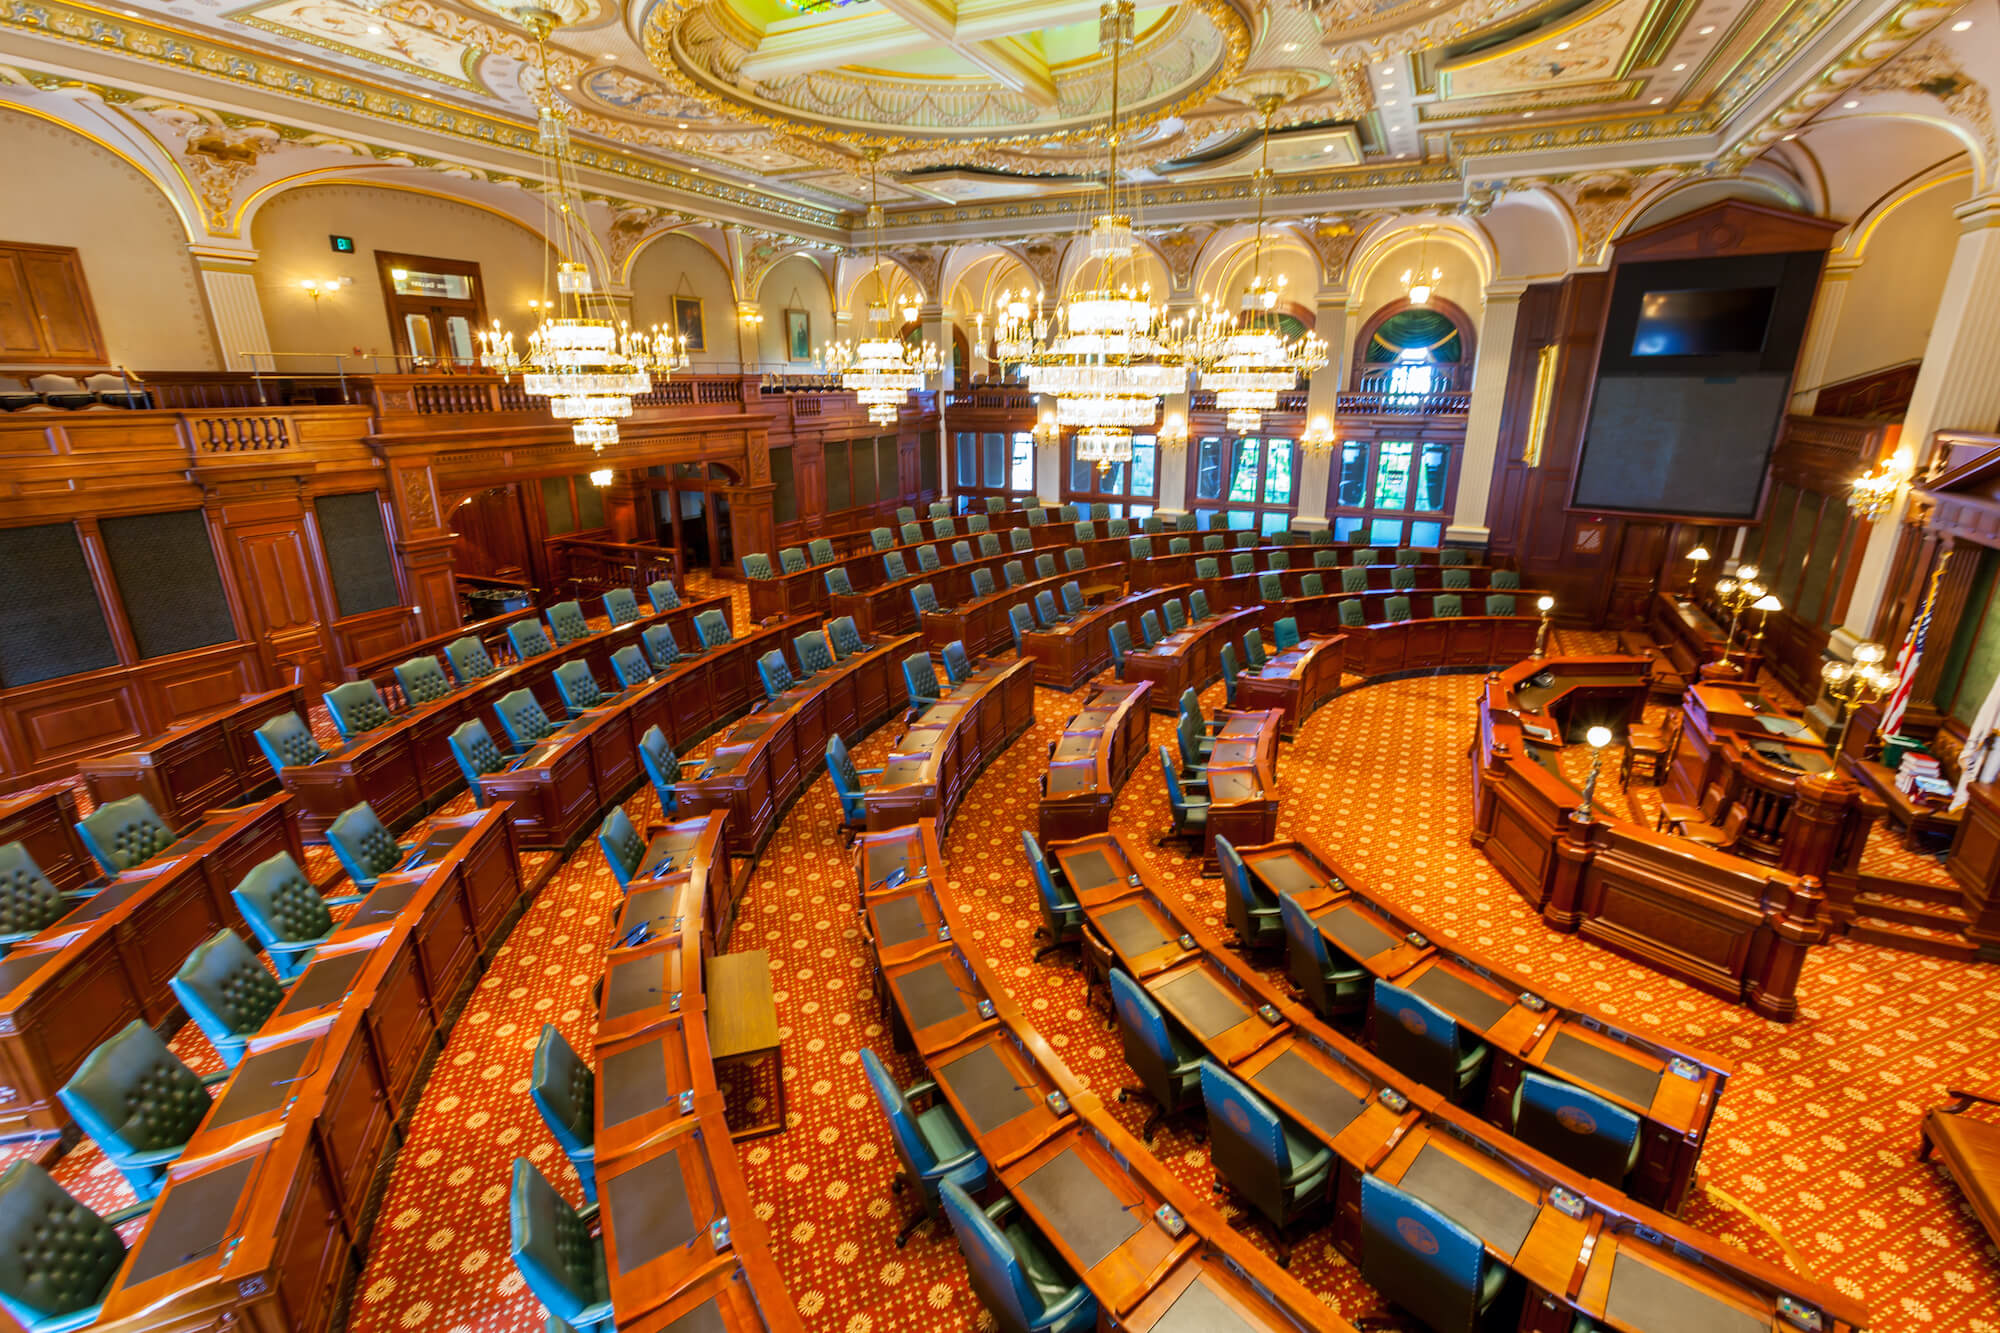 Interior of the Senate Chamber of the Illinois State Capitol